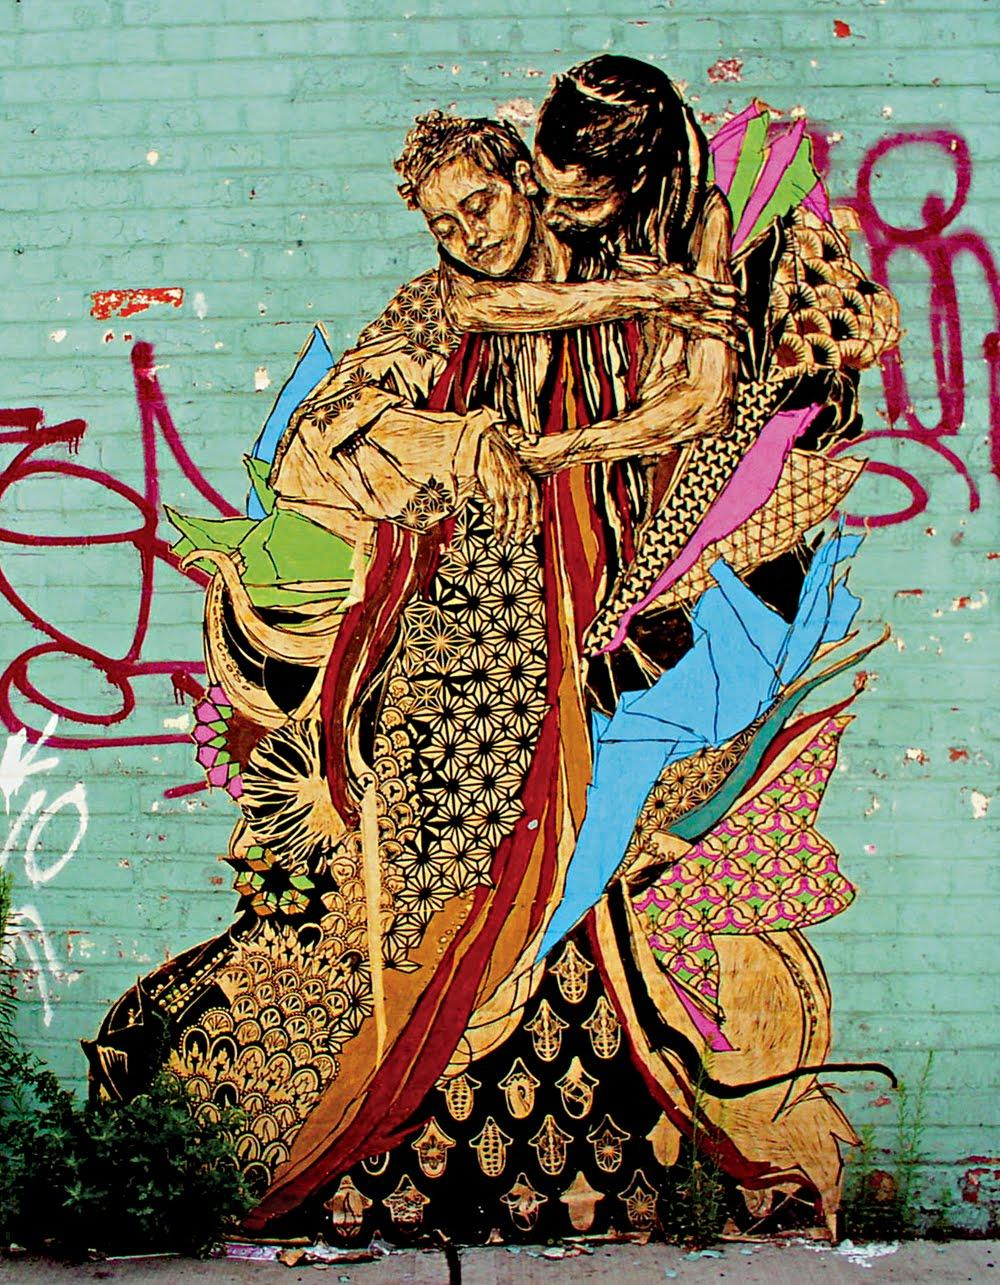 By placing her wheatpaste drawings on the sides of abandoned buildings, Curry is able to transform everyday, banal urban settings into little spaces of magic and beauty. Photo courtesy of www.streetinspiredtoronto.files.wordpress.com.